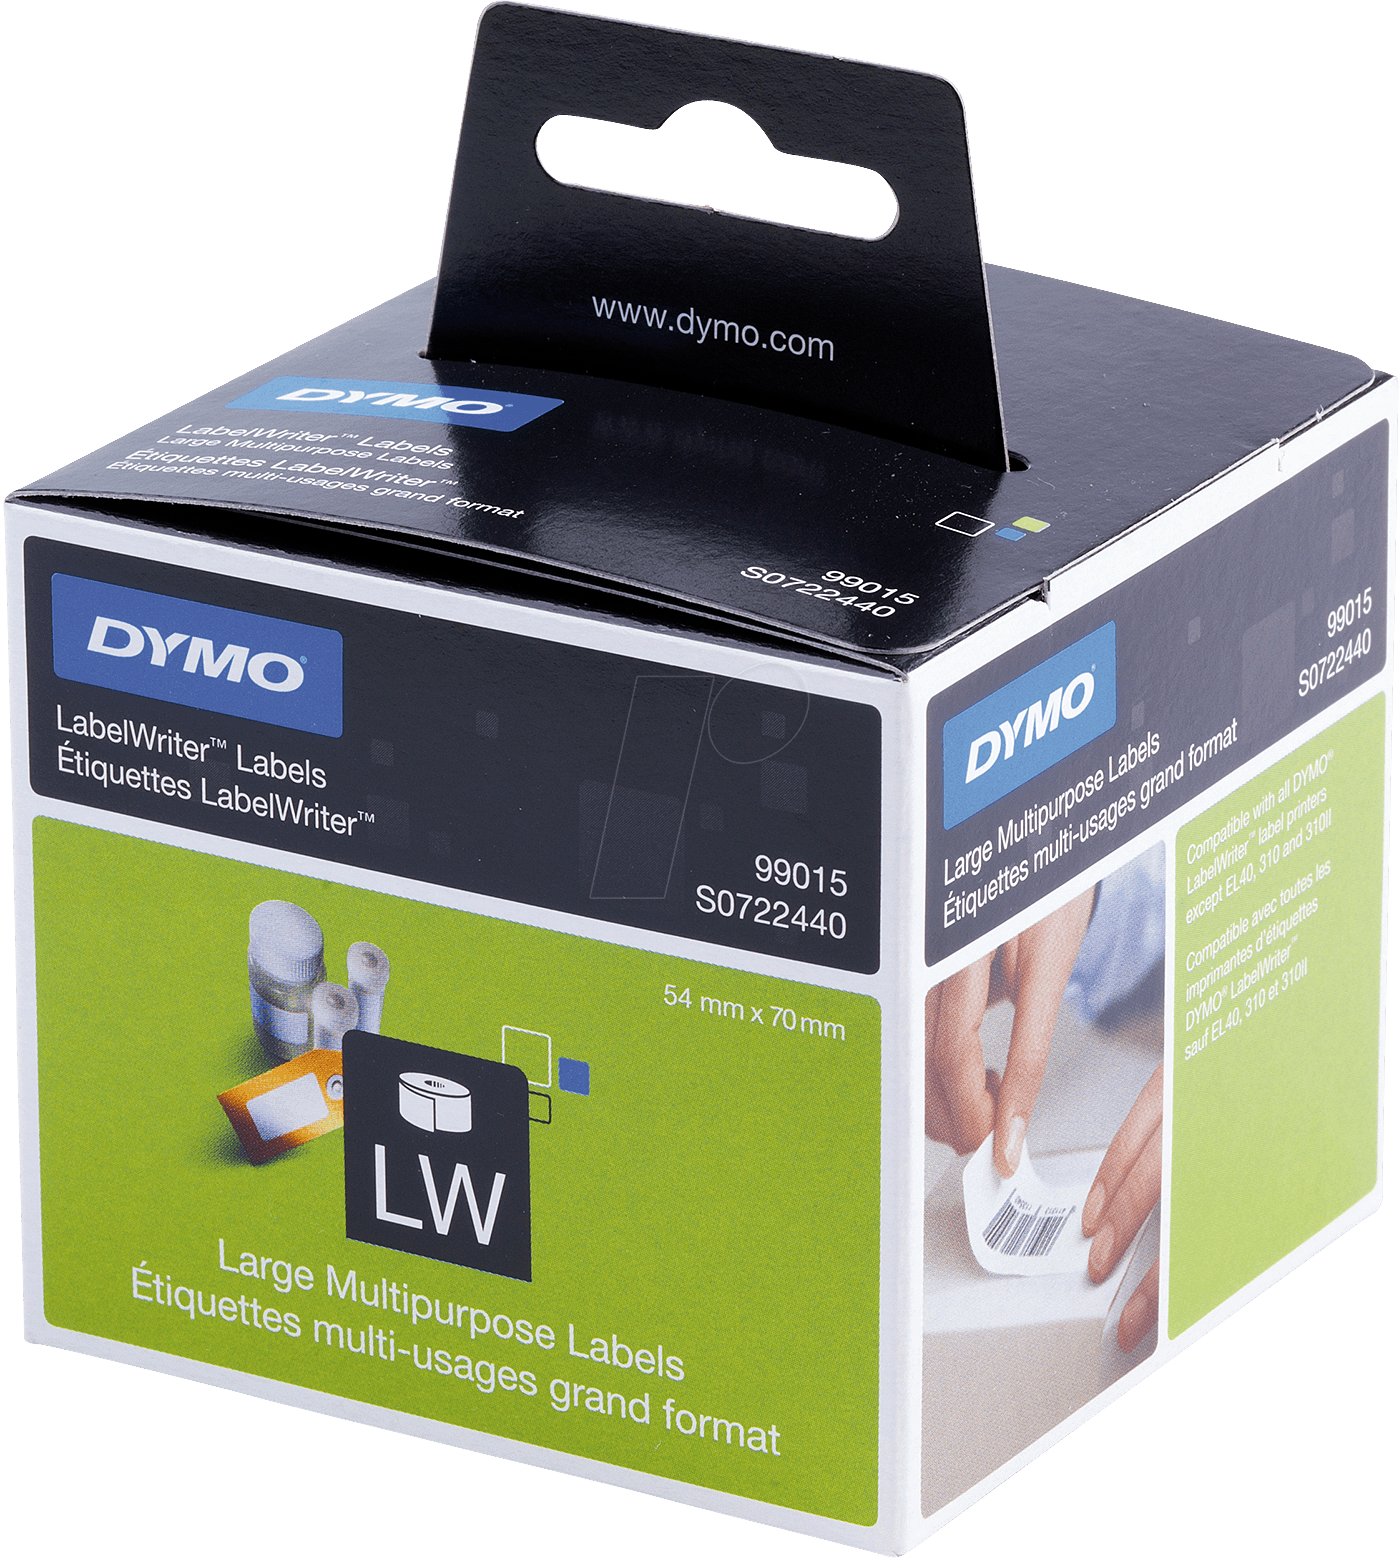 Dymo lw 99015 dymo labels for labelwriter 56 x 70 mm at for Dymo custom labels